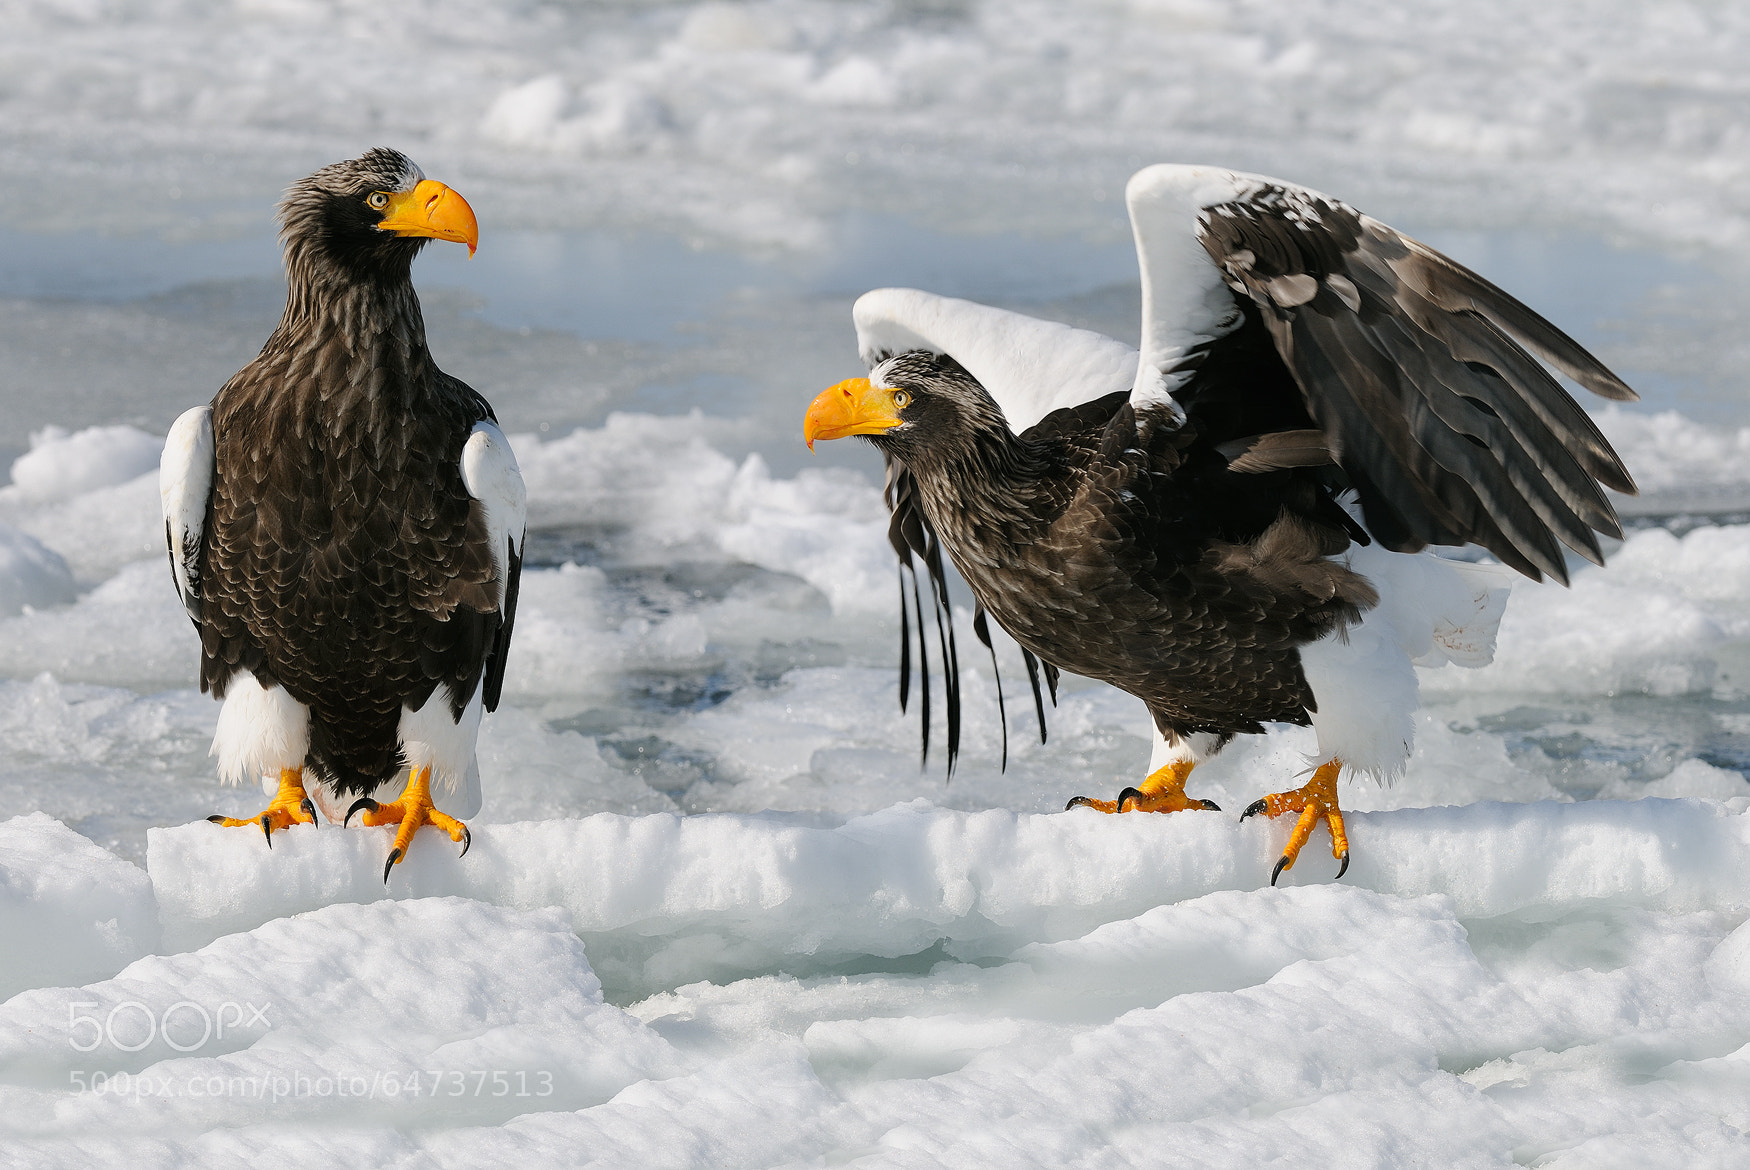 Sea Eagles on the drifting ice